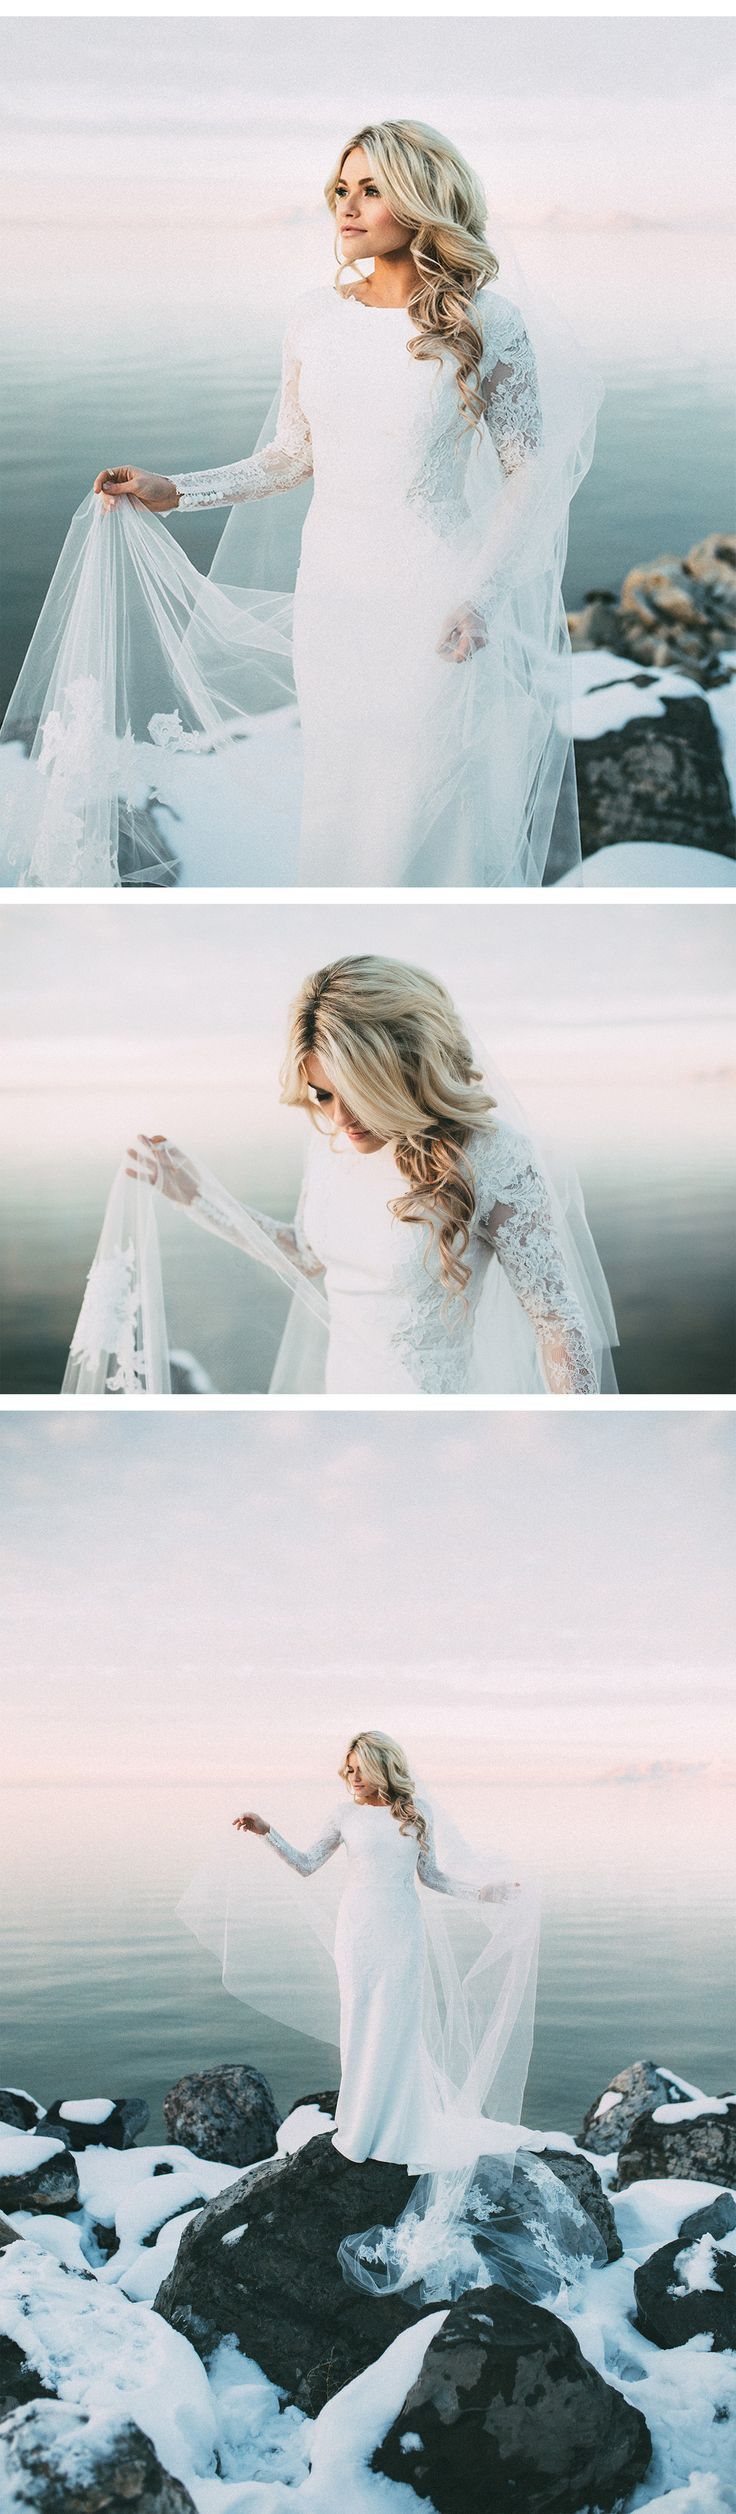 Our Muse  Winter Wonderland in Salt Lake City  is part of Wedding dresses -